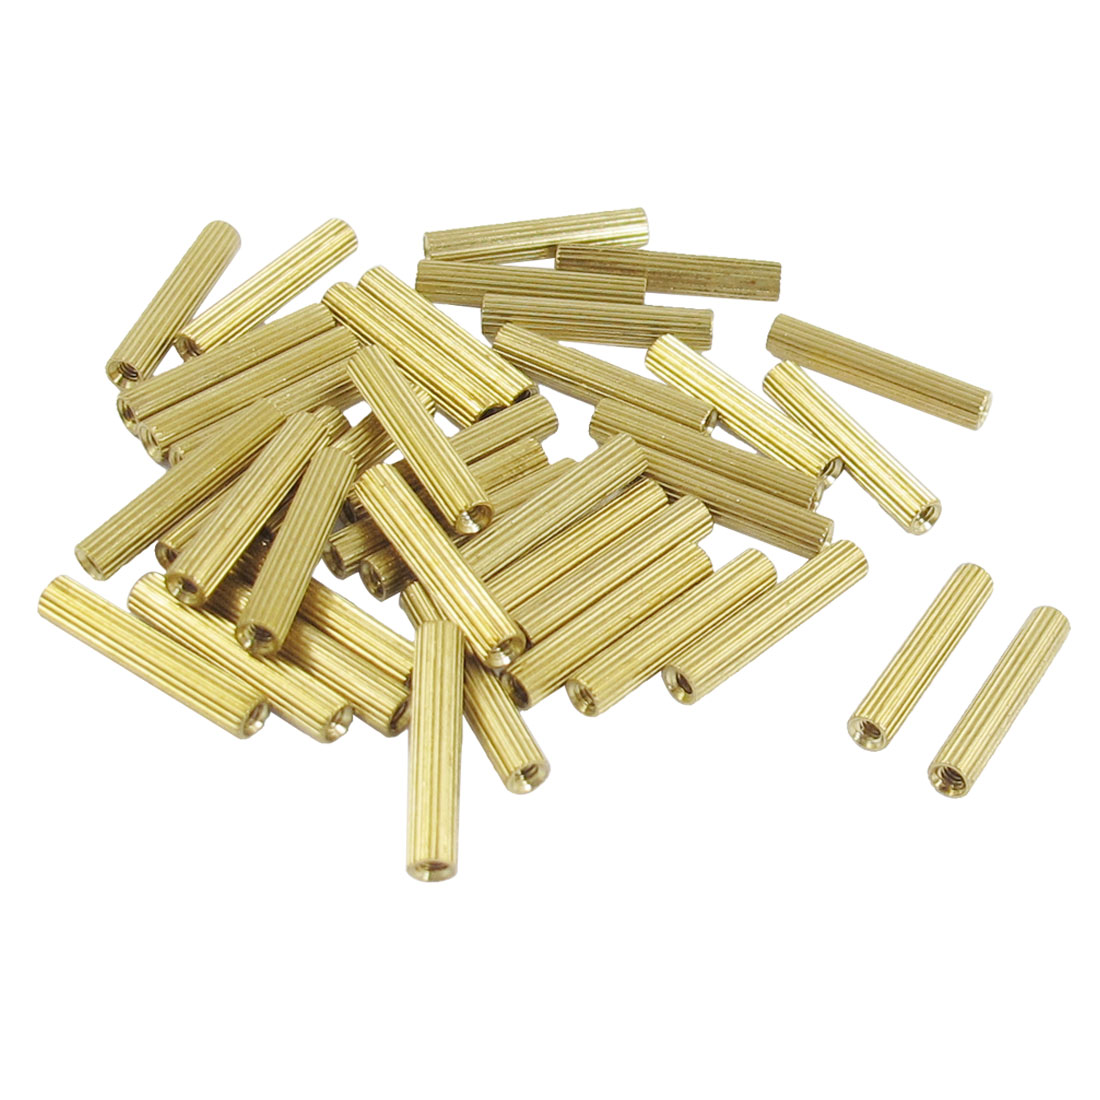 50-Pcs-M2-Female-Thread-Cylindrical-Brass-Stand-off-Support-M2x20mm